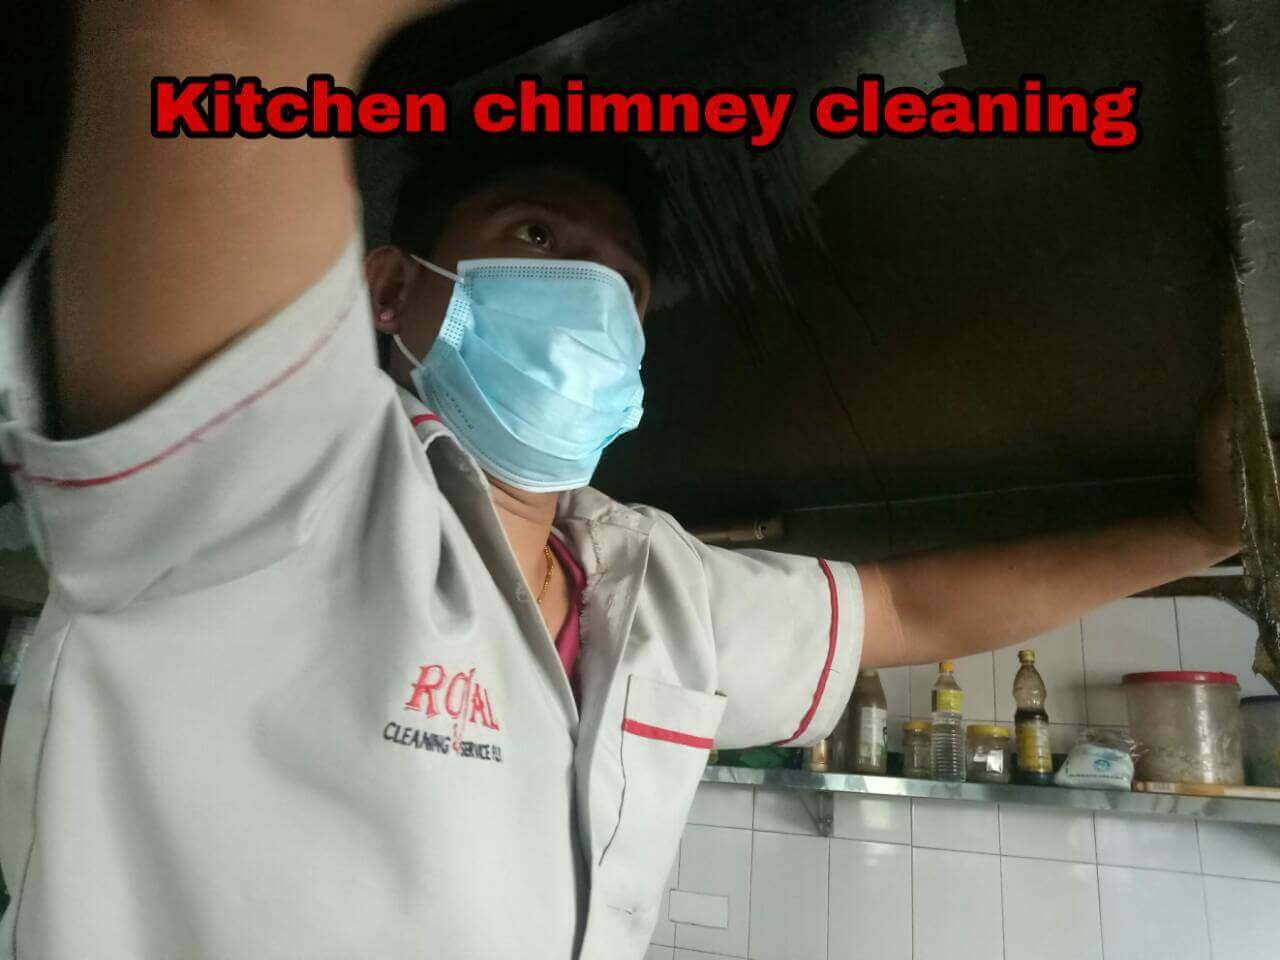 Gallery Royal Cleaning Services Amp Suppliers Pvt Ltd